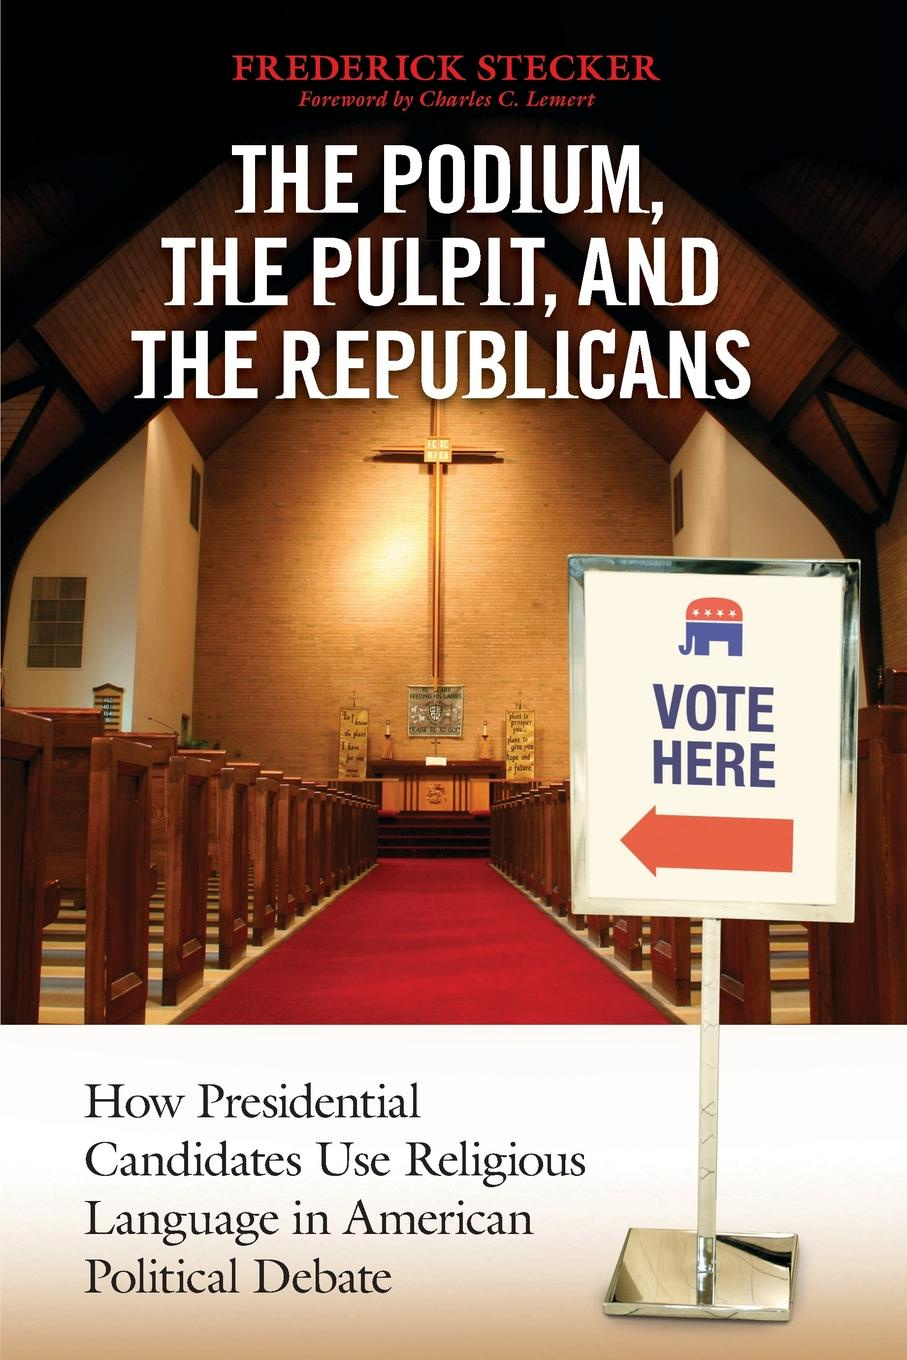 Frederick Stecker Podium, the Pulpit, and the Republicans, The. How Presidential Candidates Use Religious Language in American Political Debate ambiguity in language use